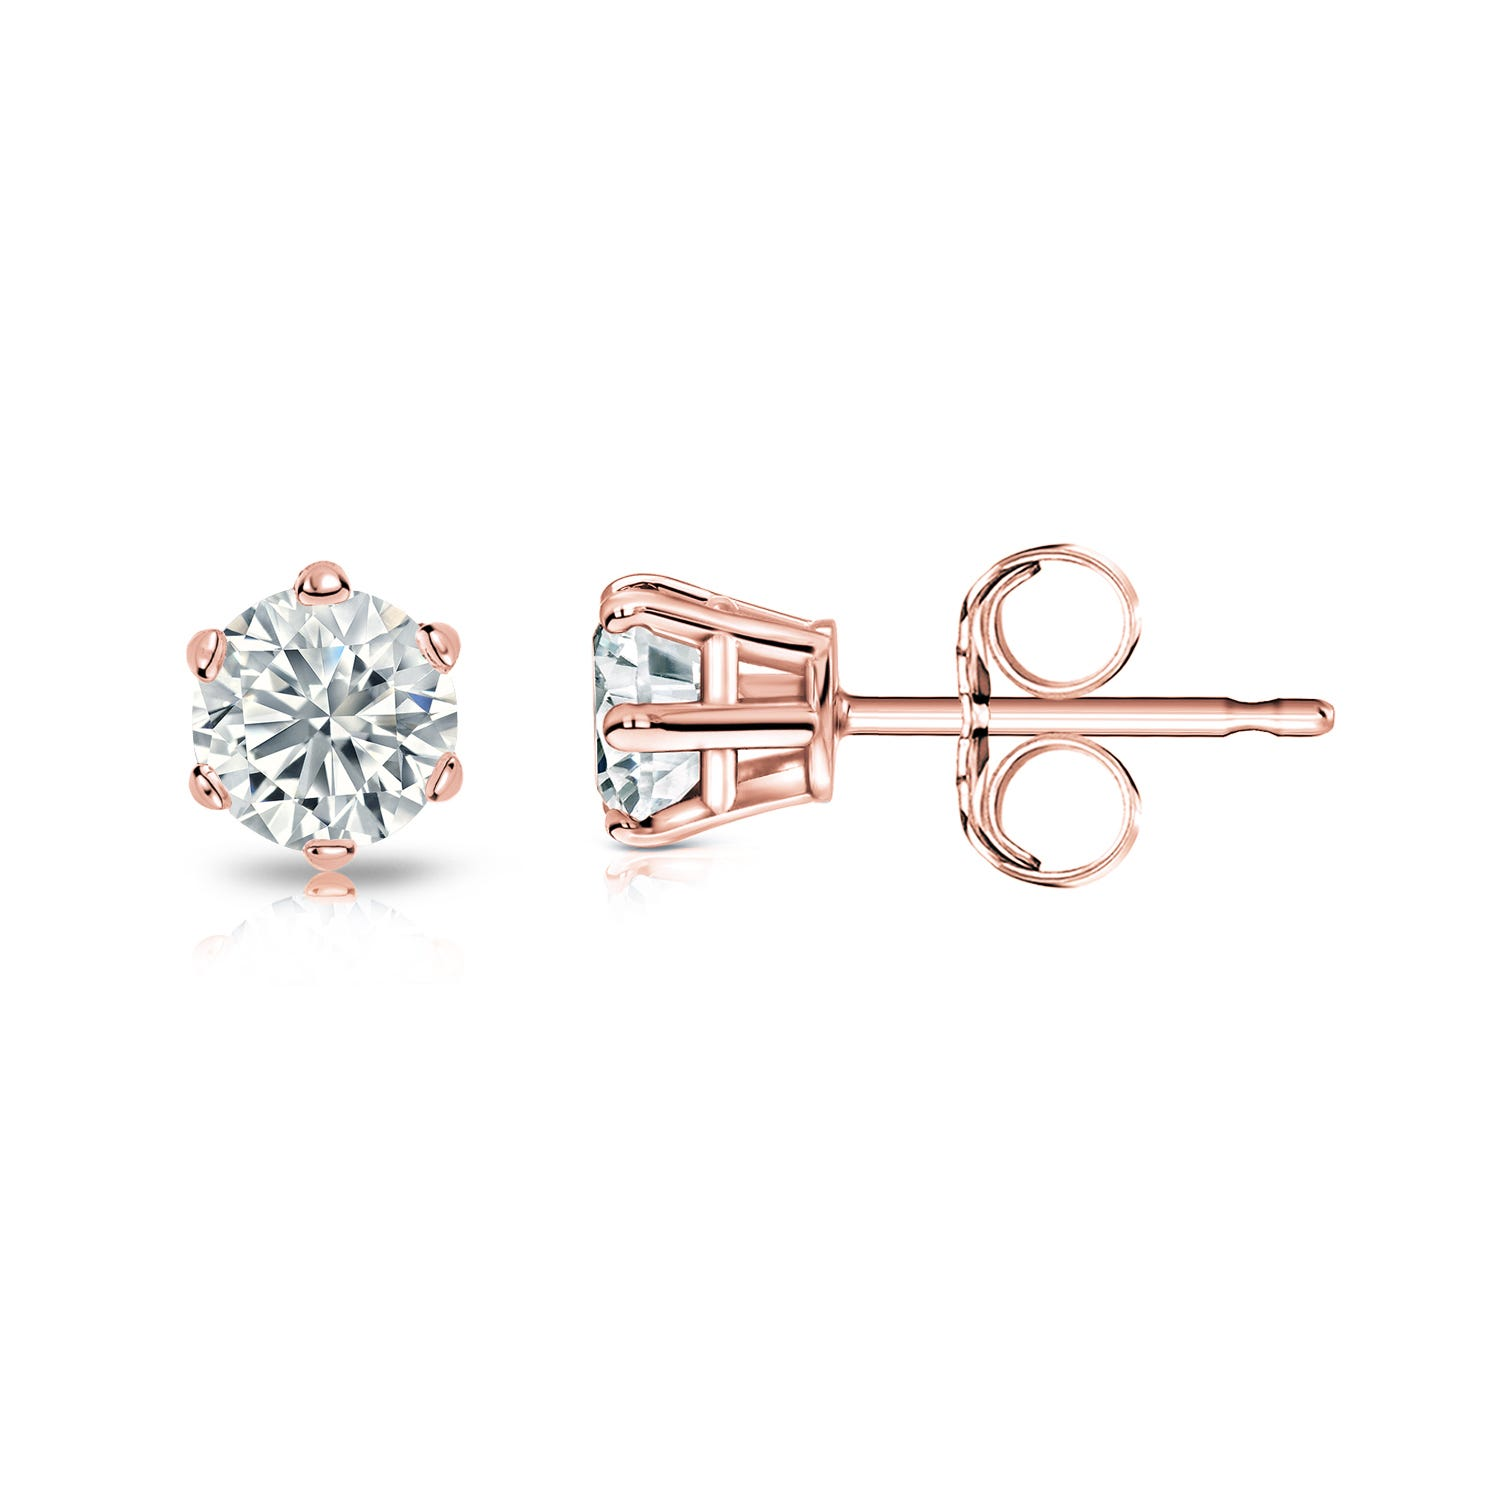 Round Diamond 1/7ctw. (IJ-SI1) Solitaire Stud 6-Prong Earrings in 14K Rose Gold